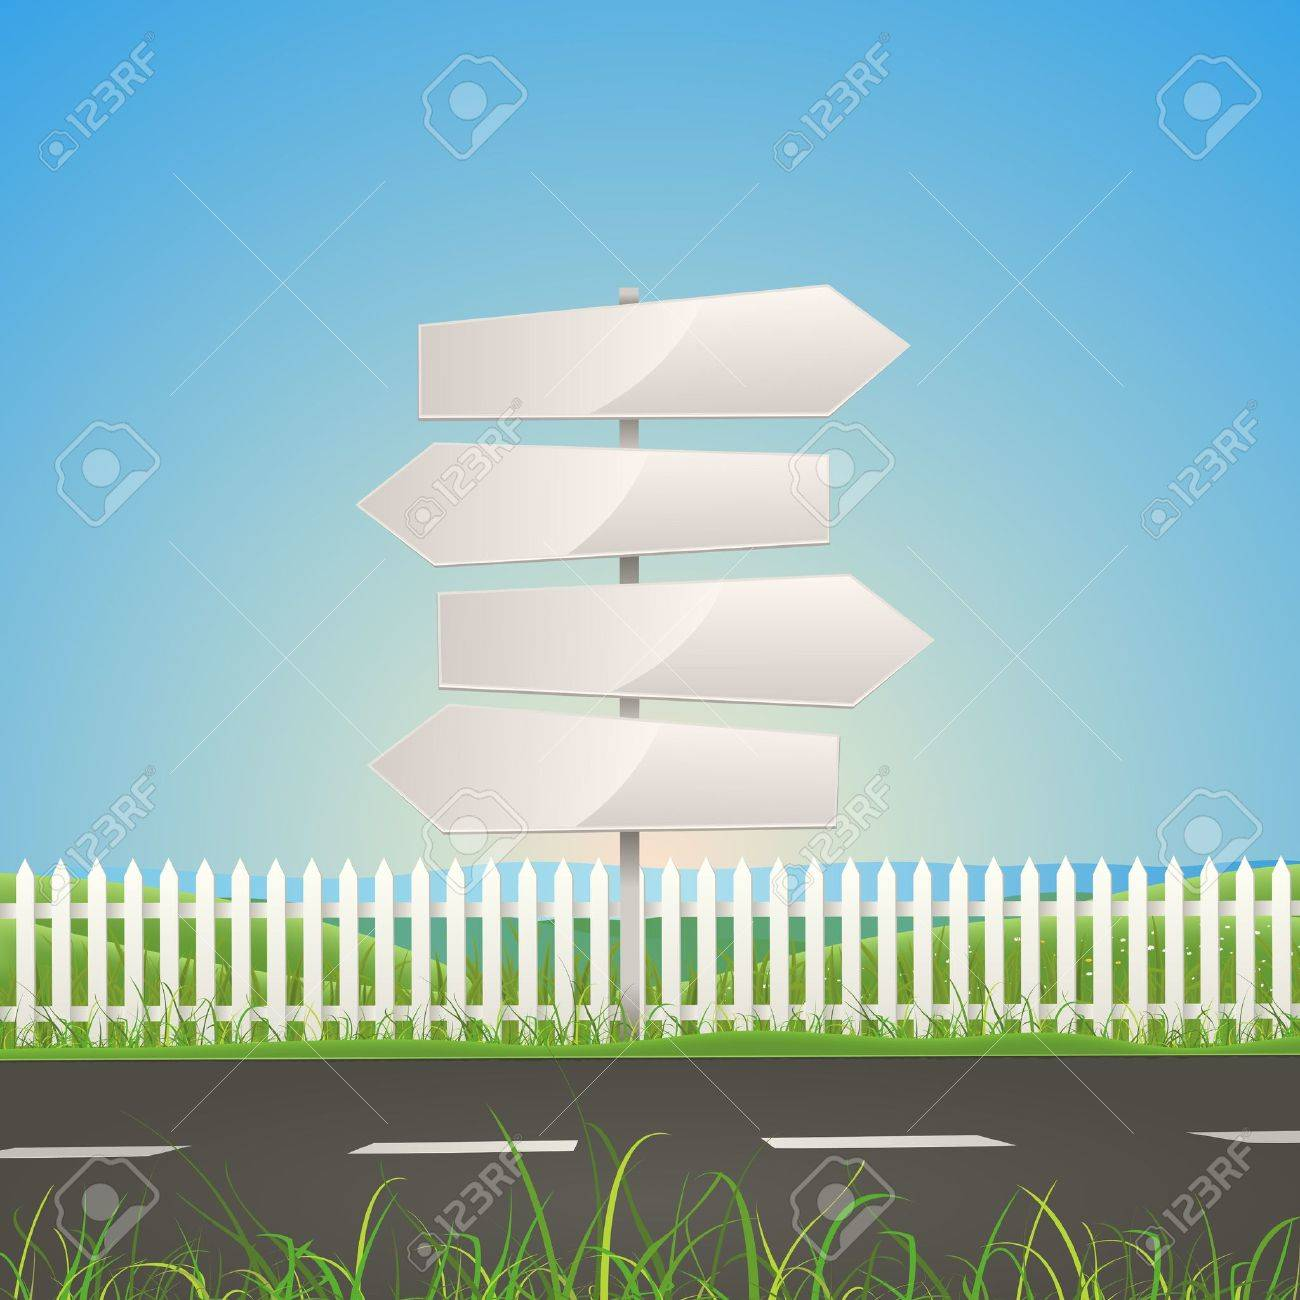 Illustration of a summer or spring season road on nature landscape with white arrow road signs Stock Vector - 13472514